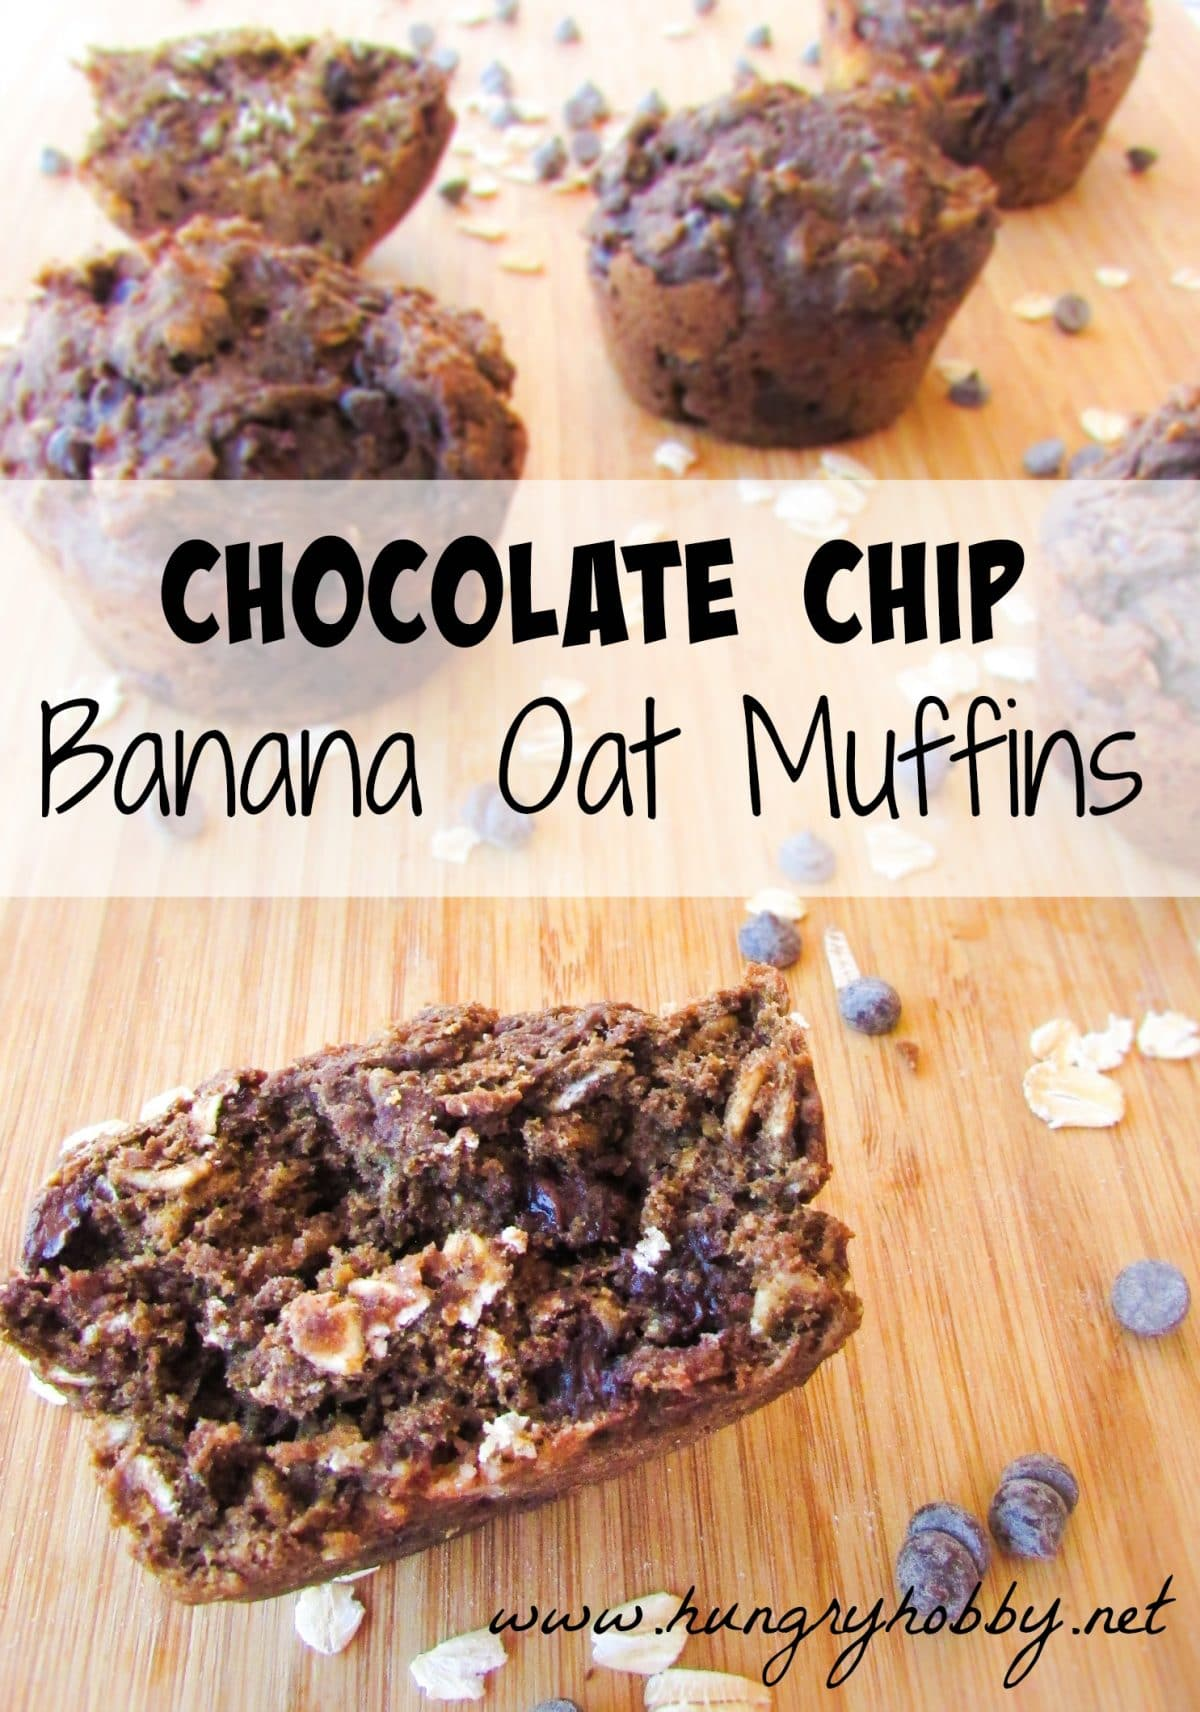 Chocolate Chip Banana Oat Muffins - Hungry Hobby